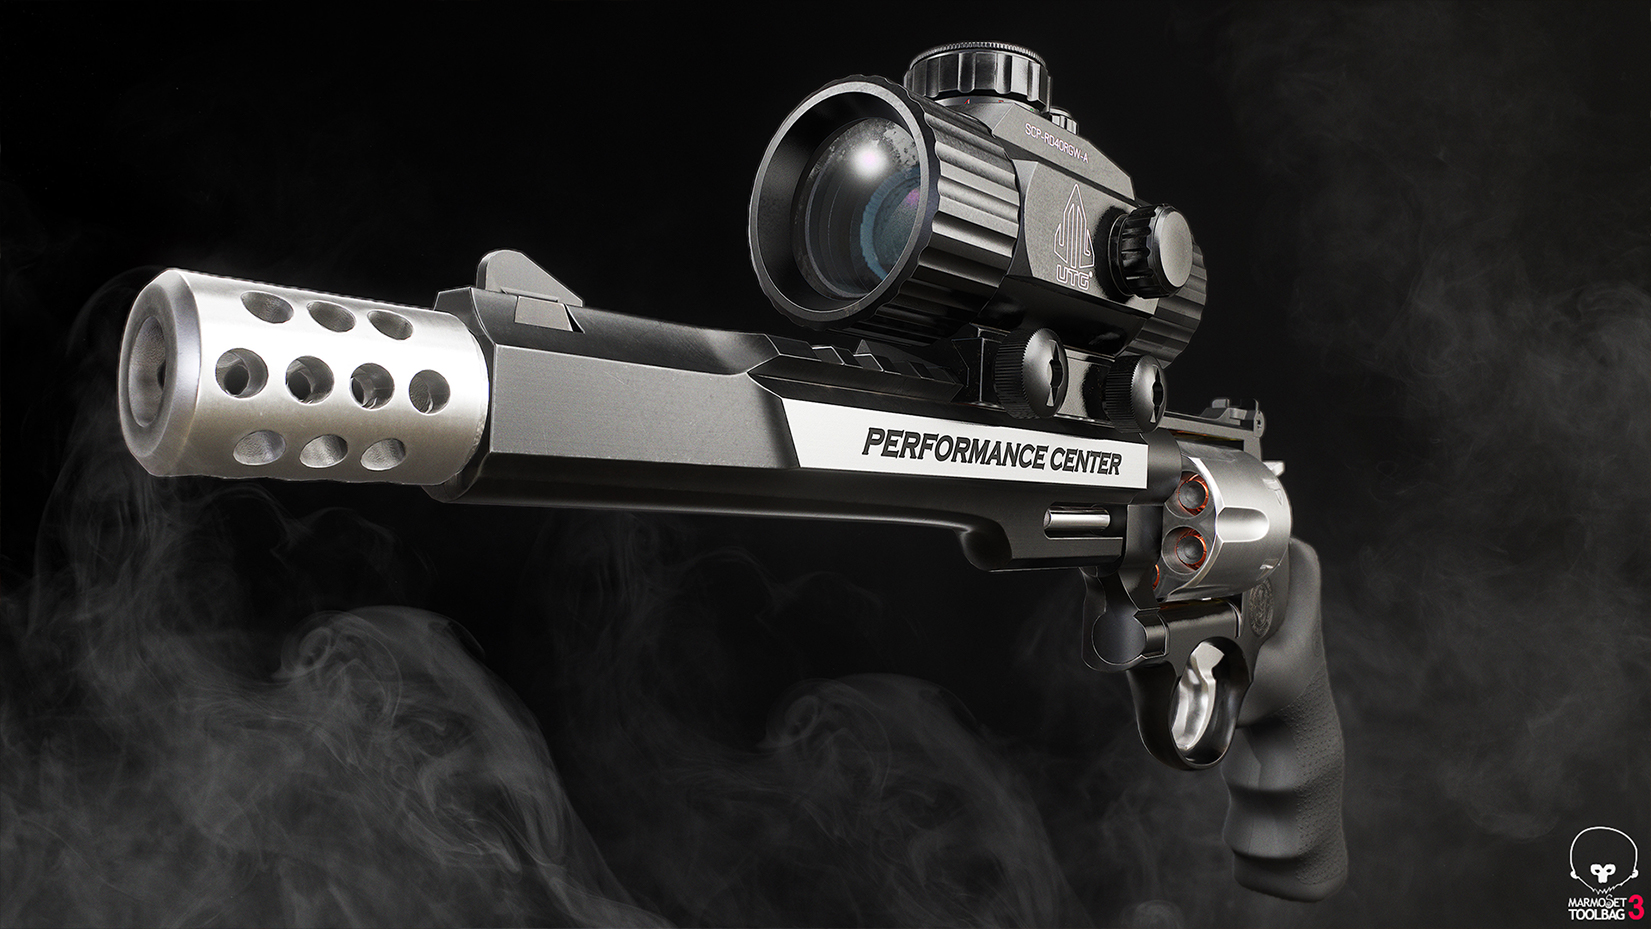 Shot rendered in Marmoset Toolbag, compositing in Photoshop, gun creation in Blender, ZBrush, Substance Painter